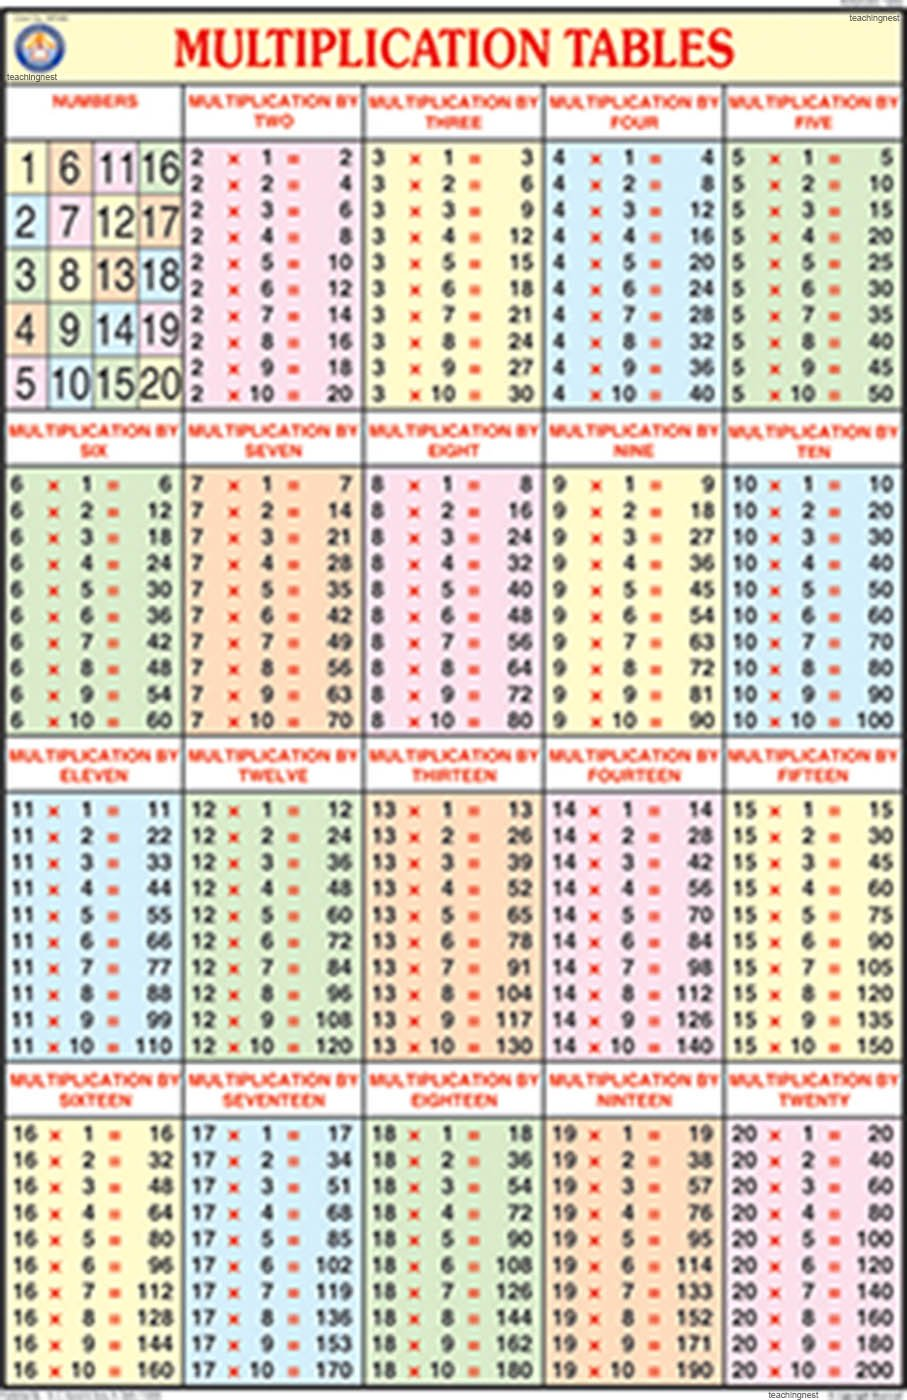 Hd wallpapers multiplication chart up to 1000 x 1000 get free high quality hd wallpapers multiplication chart up to 1000 x 1000 gamestrikefo Gallery